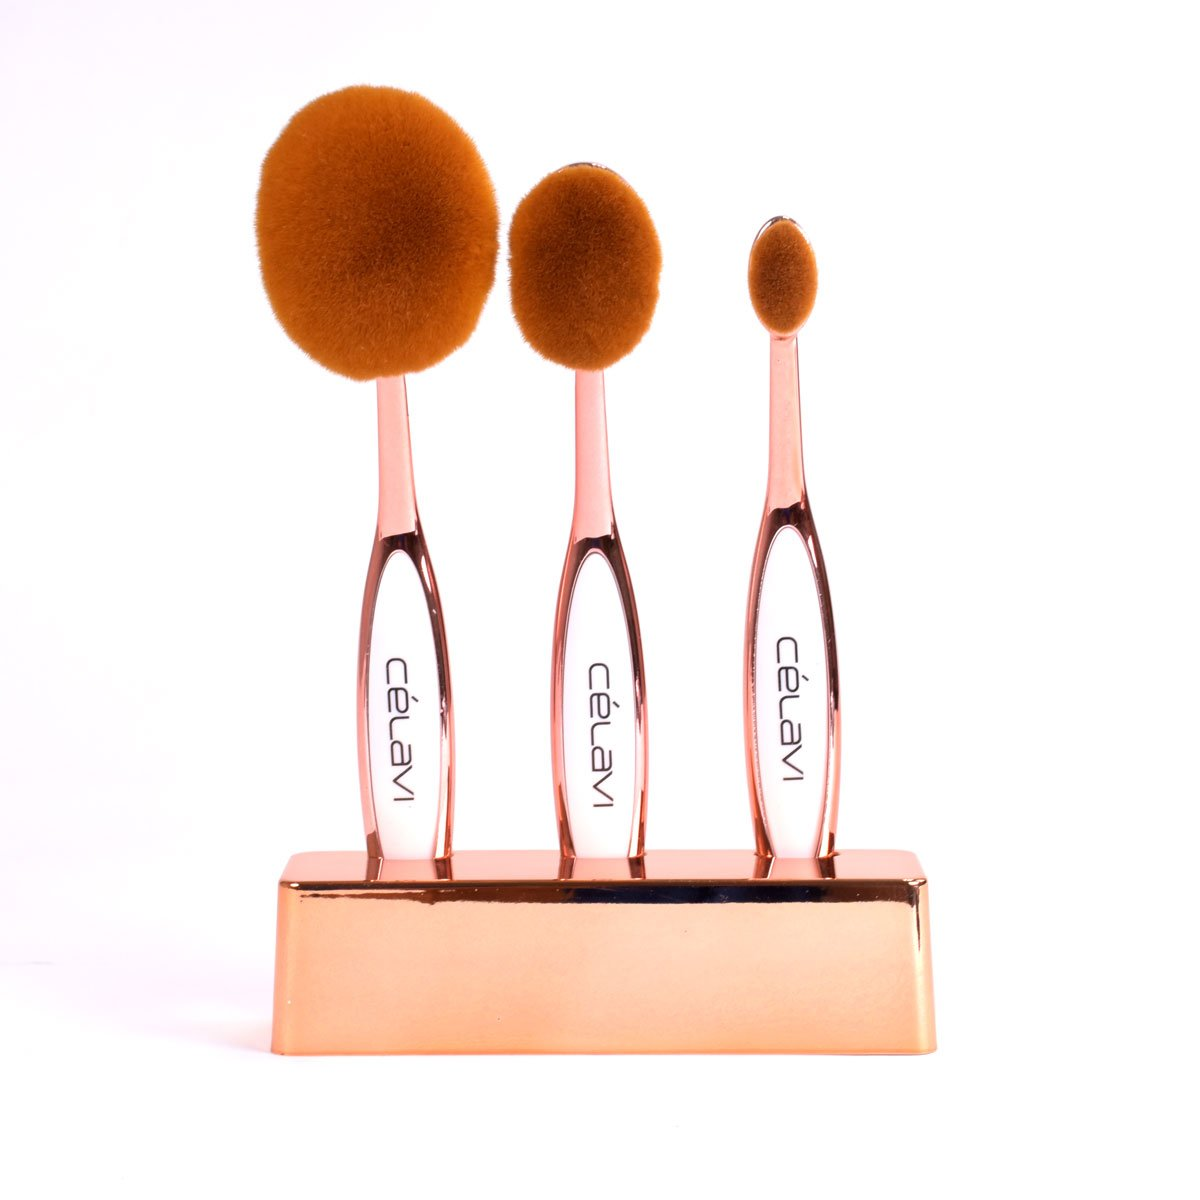 Celavi Oval Makeup Brush Professional Cosmetic Tools for Face, Foundation, Creams, Liquids, Moisturizer, Powder, Blush, Concealer, Contour-Beauty-Celavi Cosmetics-3 Brush Set-Bronze-Celavi Cosmetics